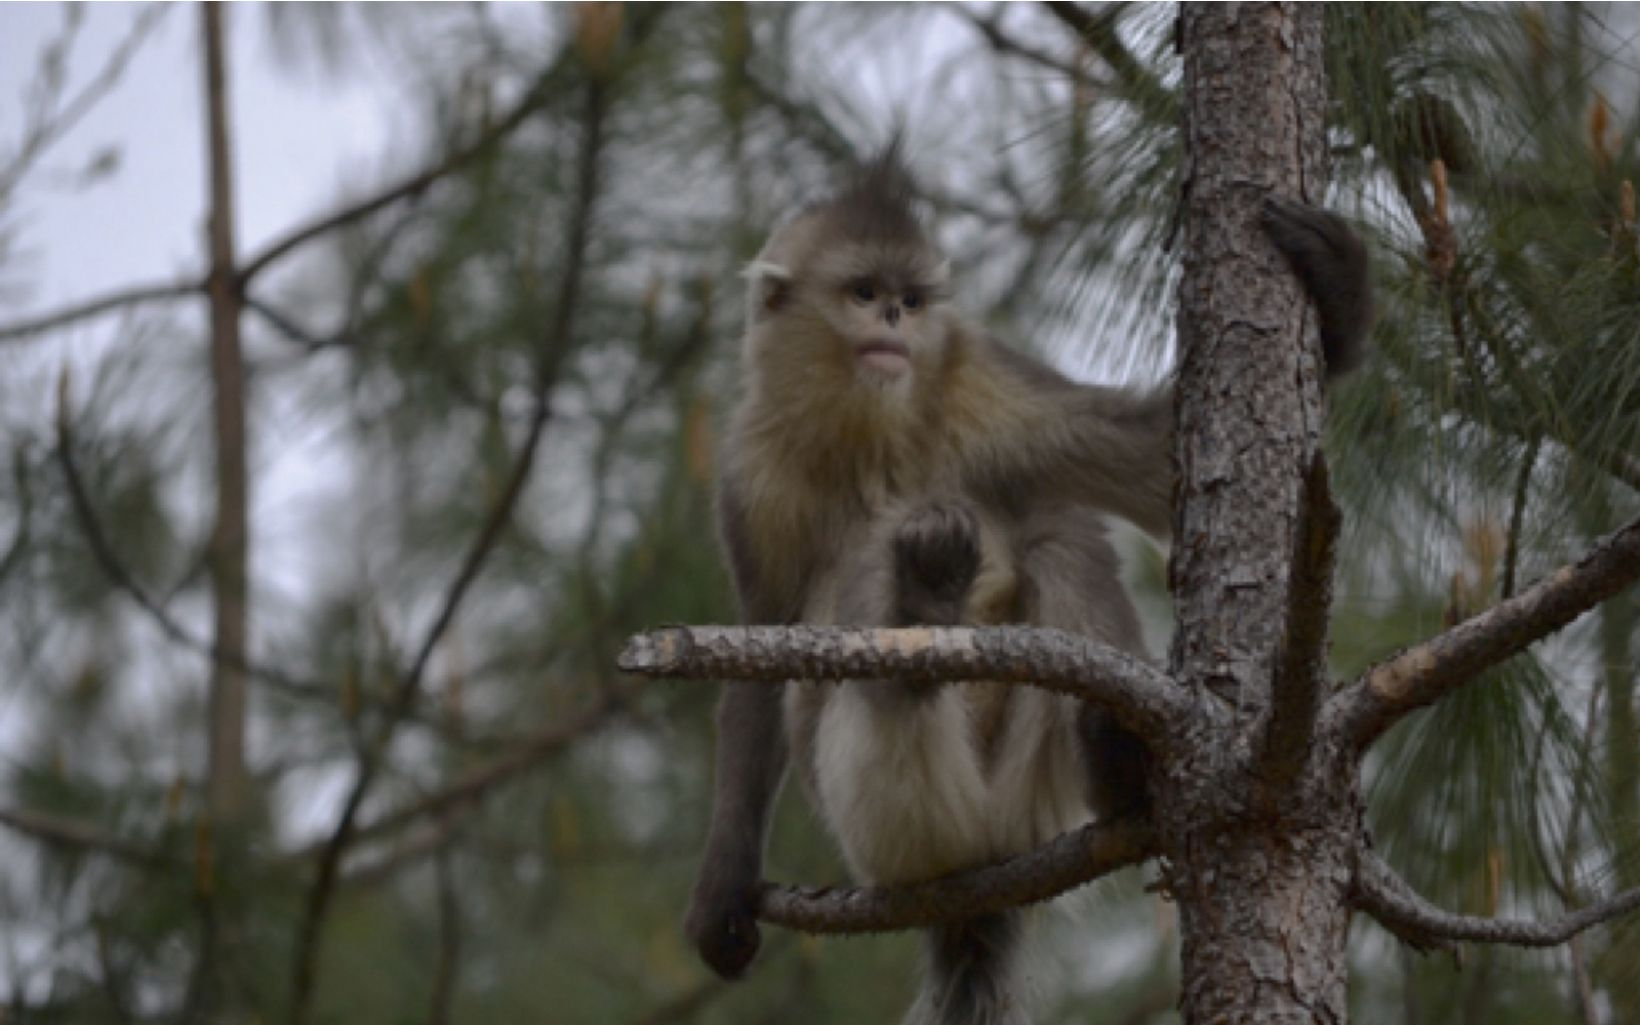 A Yunnan Golden Monkey